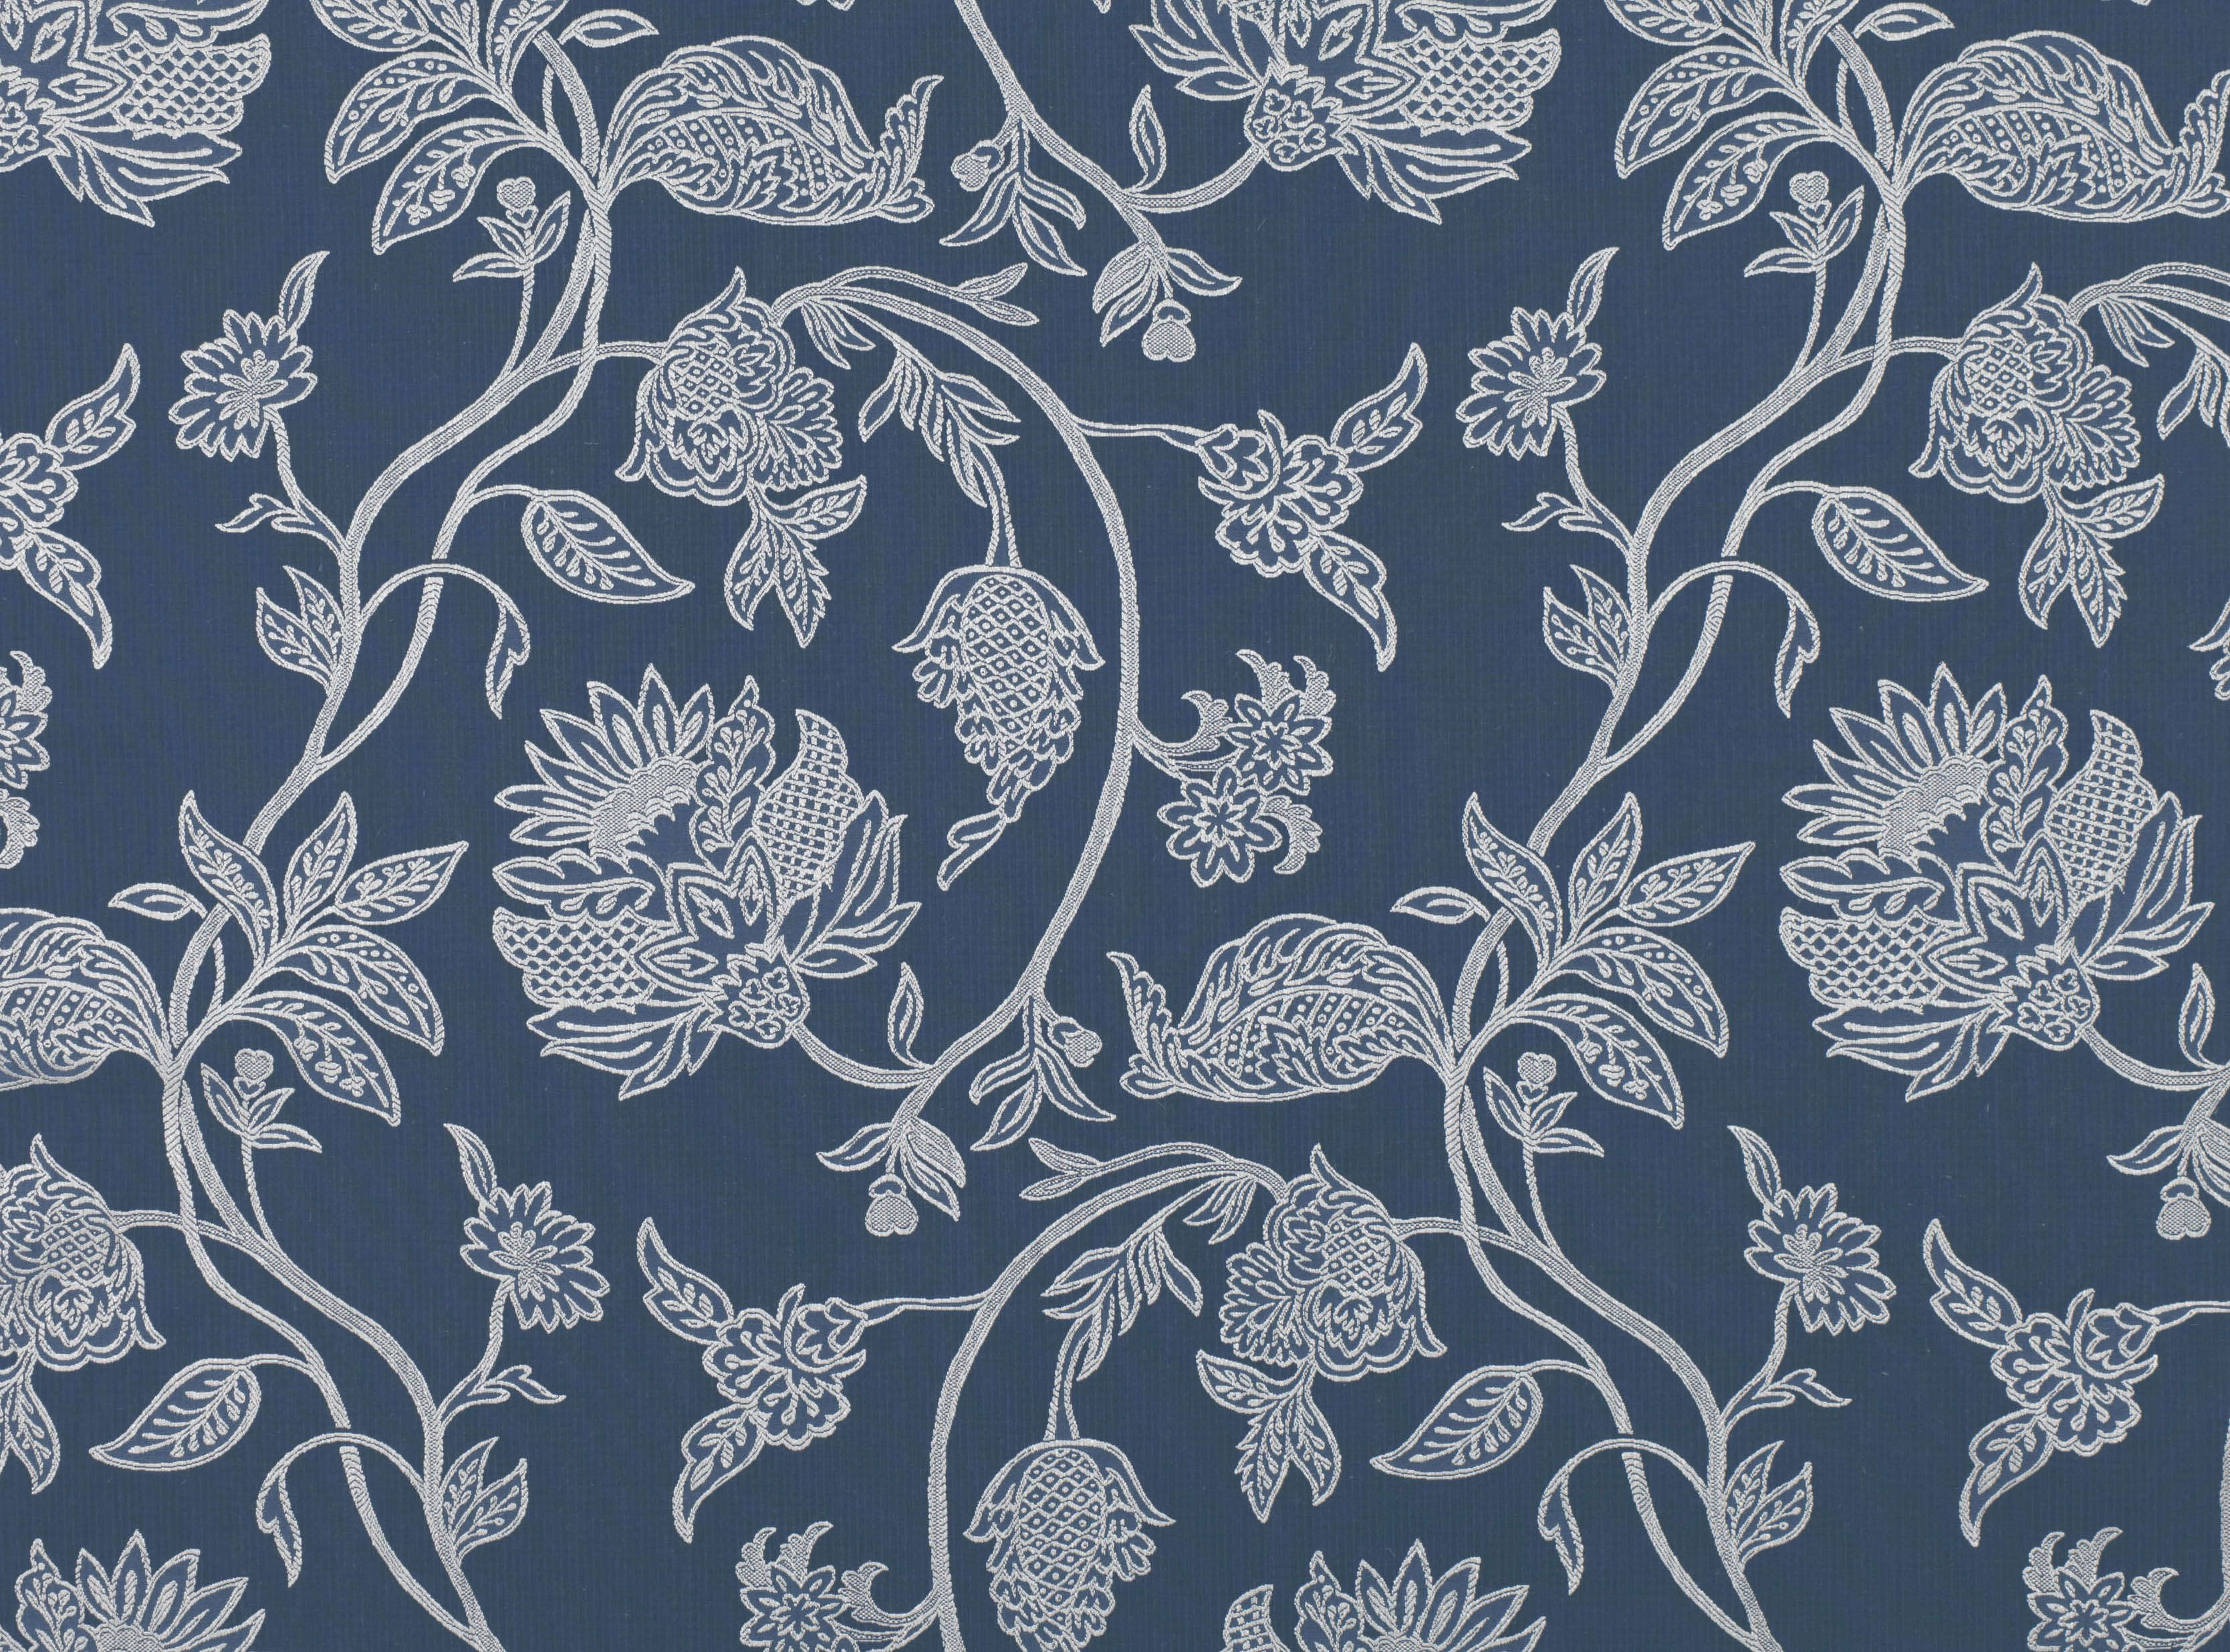 A Stylised Jacquard Floral Finely Woven To Give An